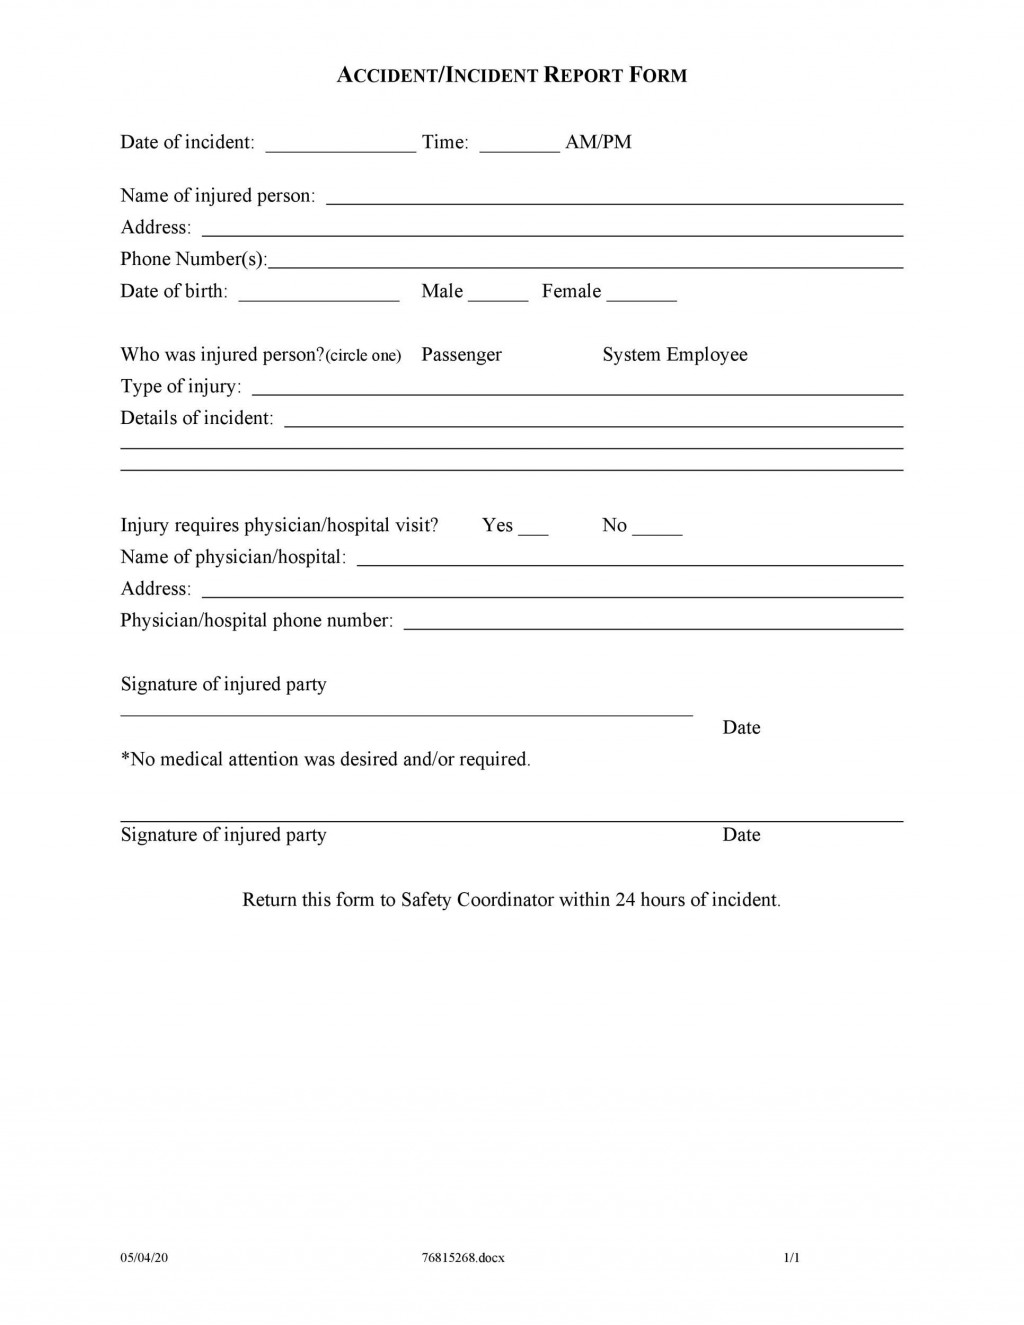 006 Wonderful Workplace Incident Report Form Template Nsw High Definition Large